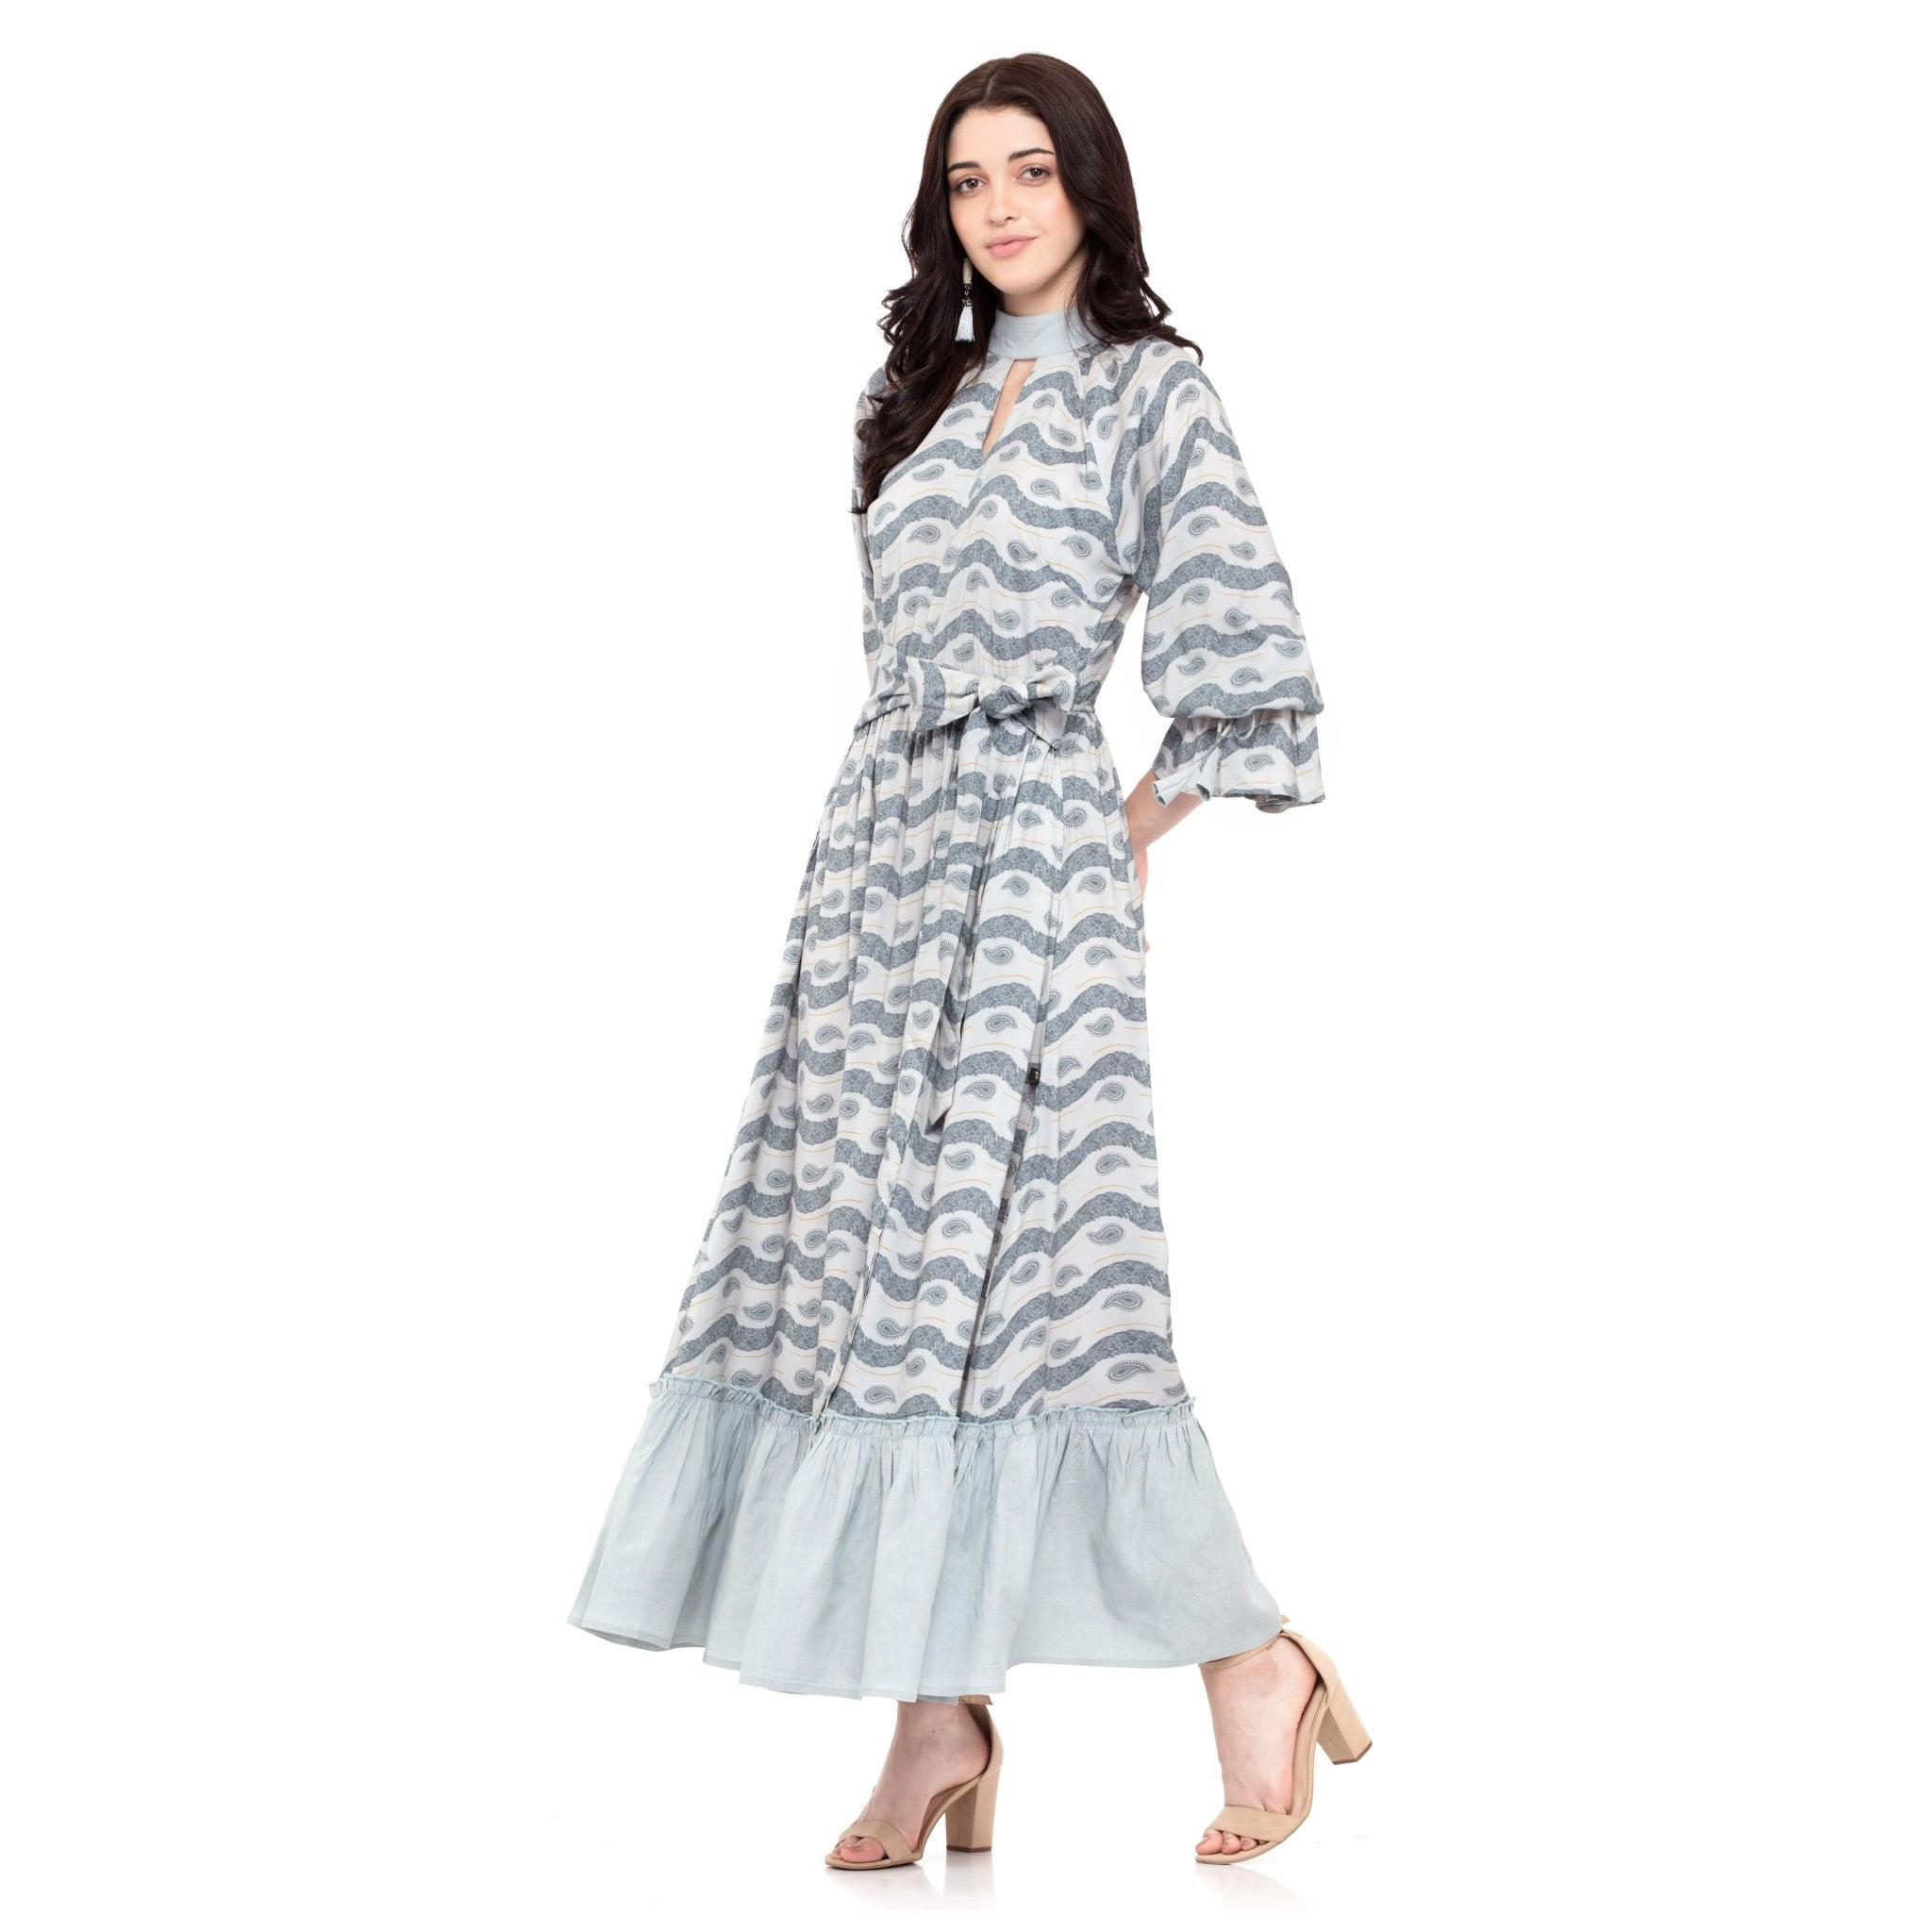 GRAY MAXI DRESS WITH FLARED BORDER - ZOMO